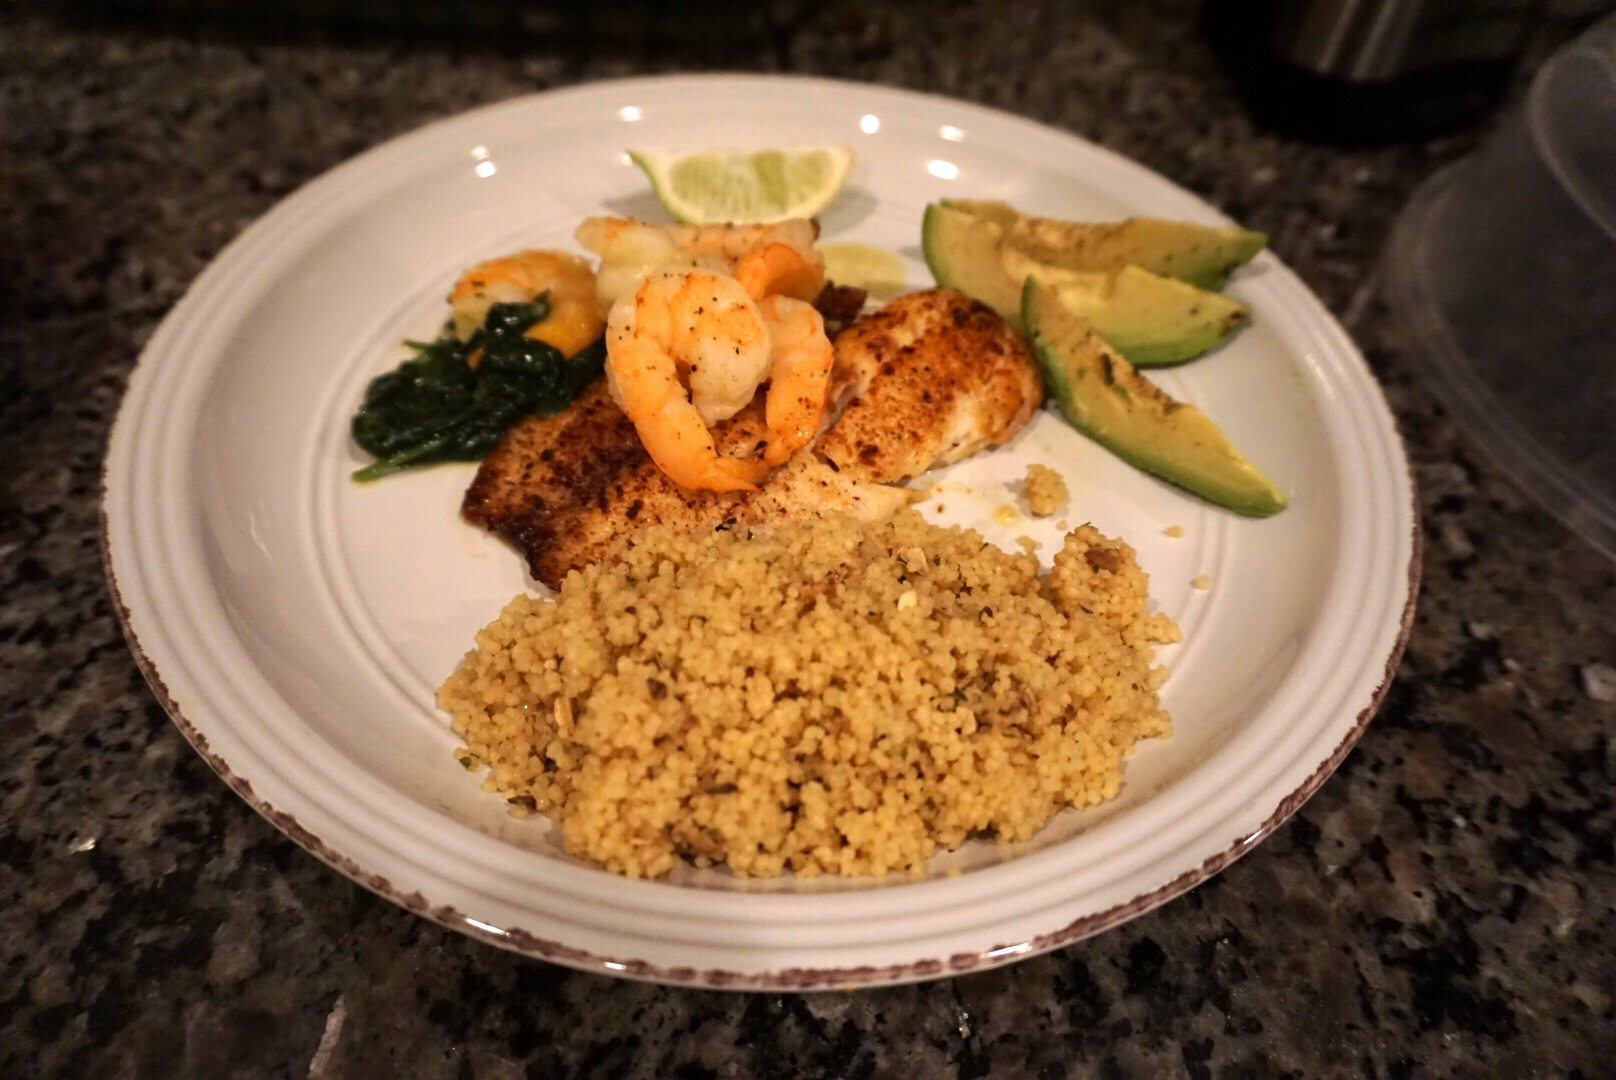 Tilapia + Shrimp with Spinach and Quinoa